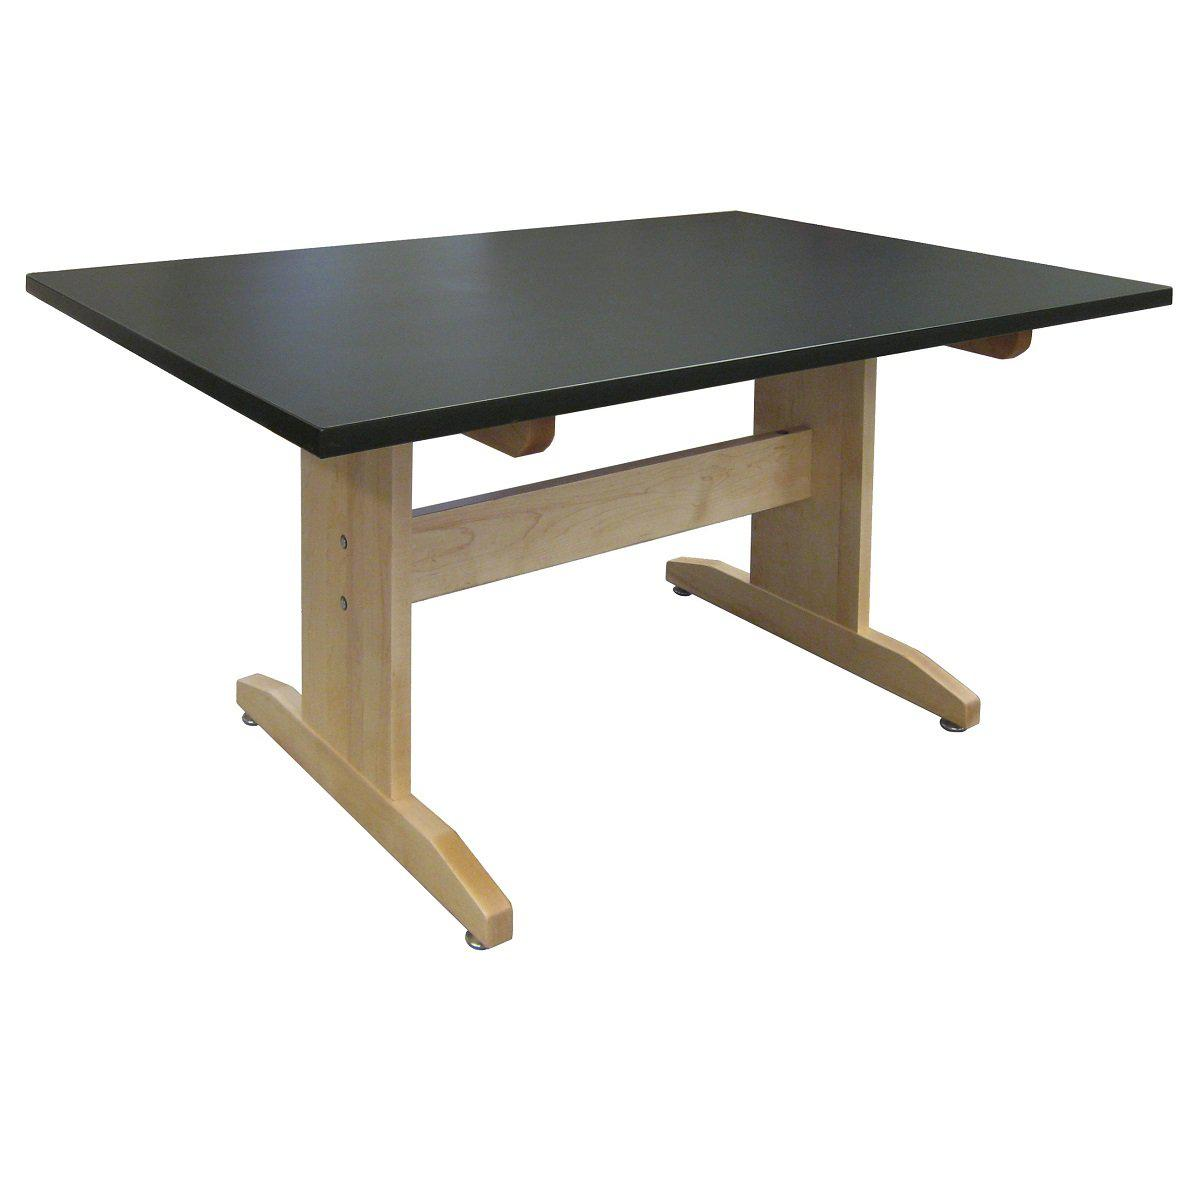 "Art Table, 42"" x 60"" Black HPL Top, 30"" High"